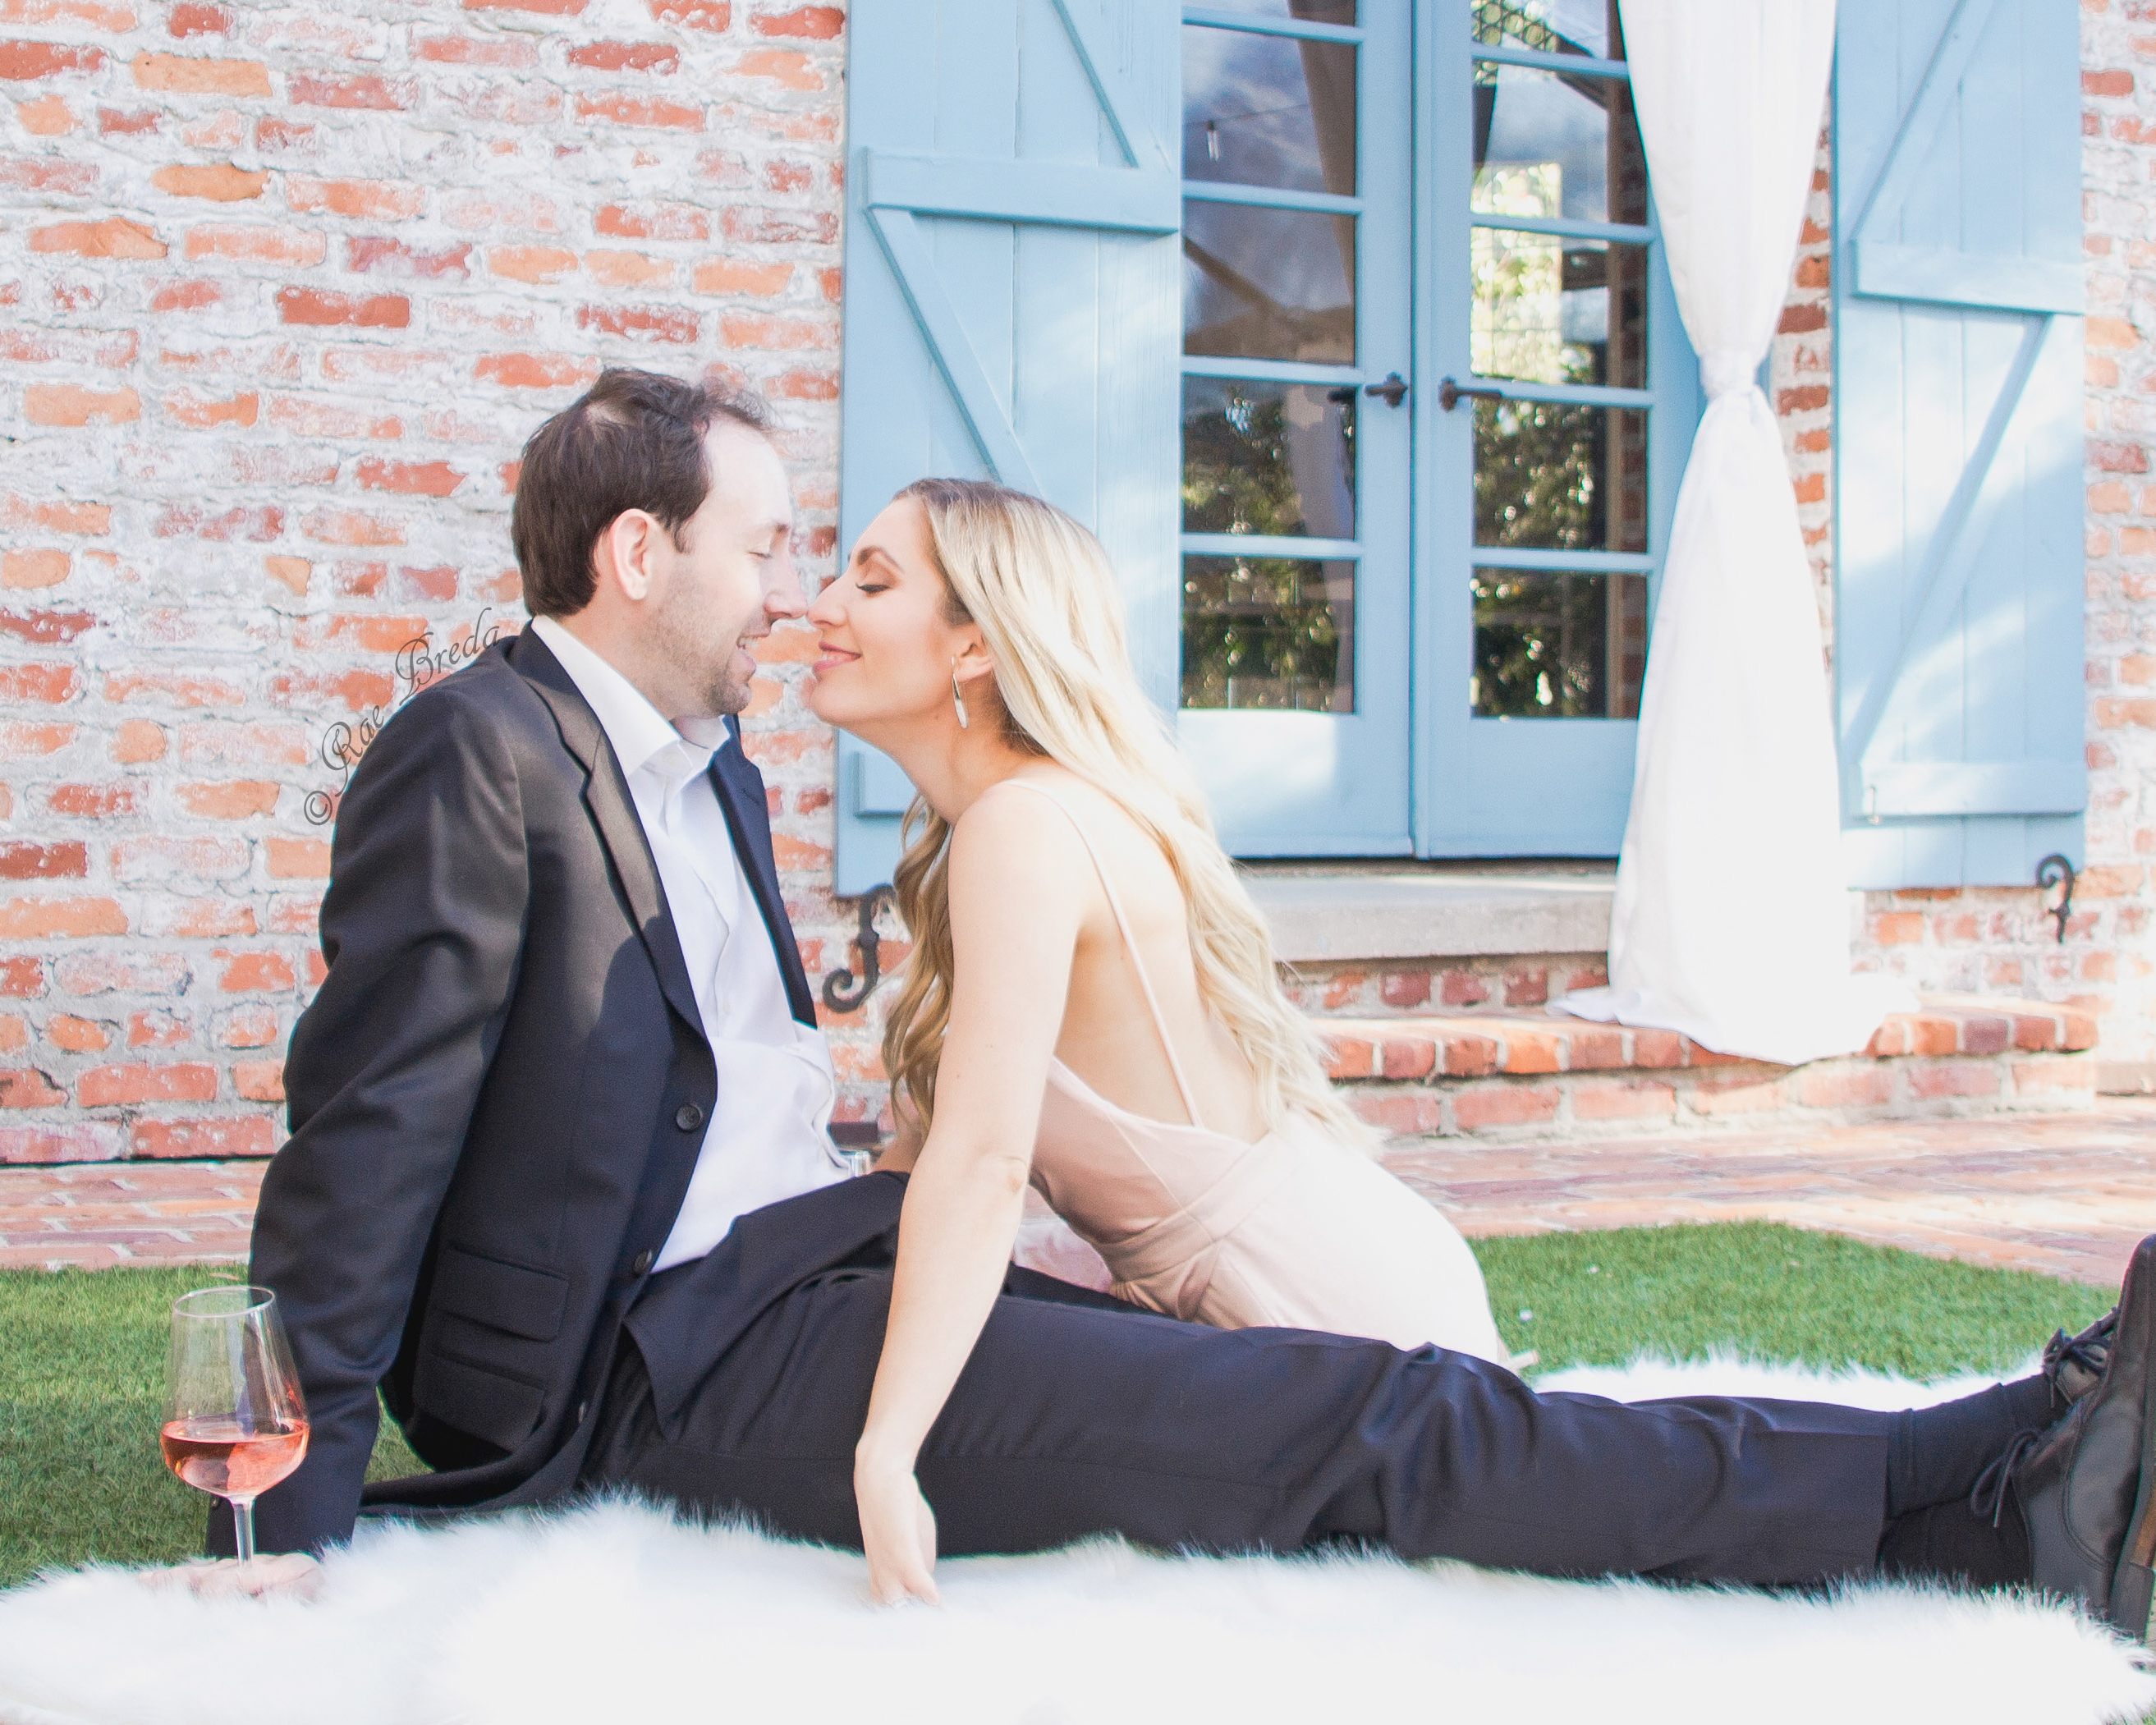 7 TIPS TO CREATE A SUCCESSFUL MARRIAGE